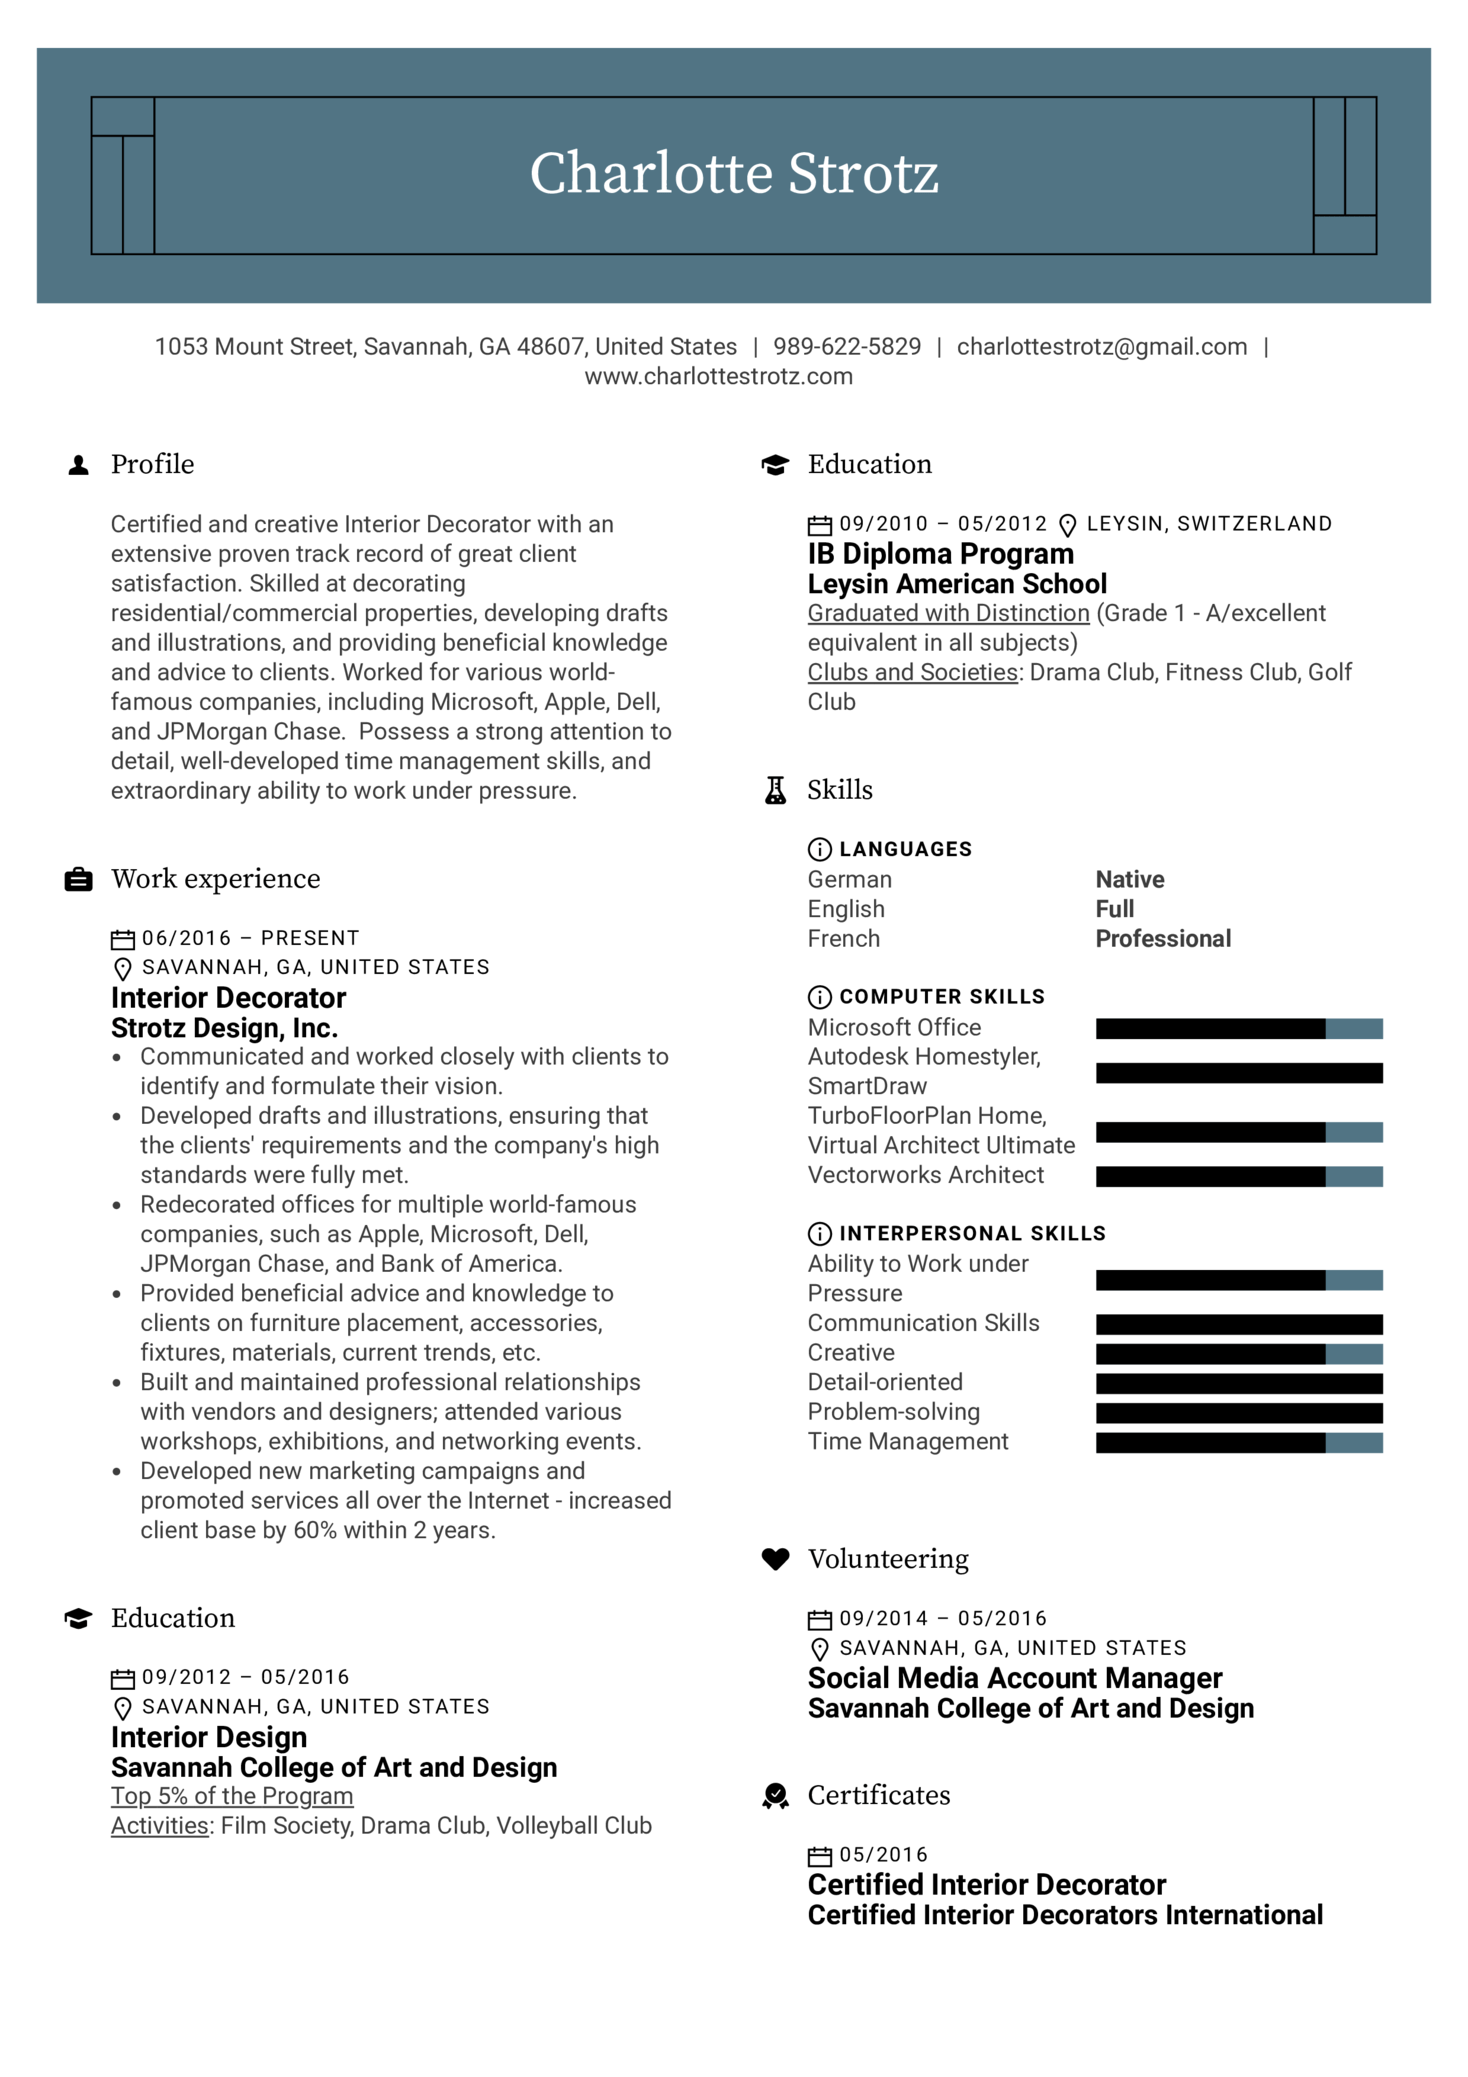 Interior Decorator Resume Example Kickresume